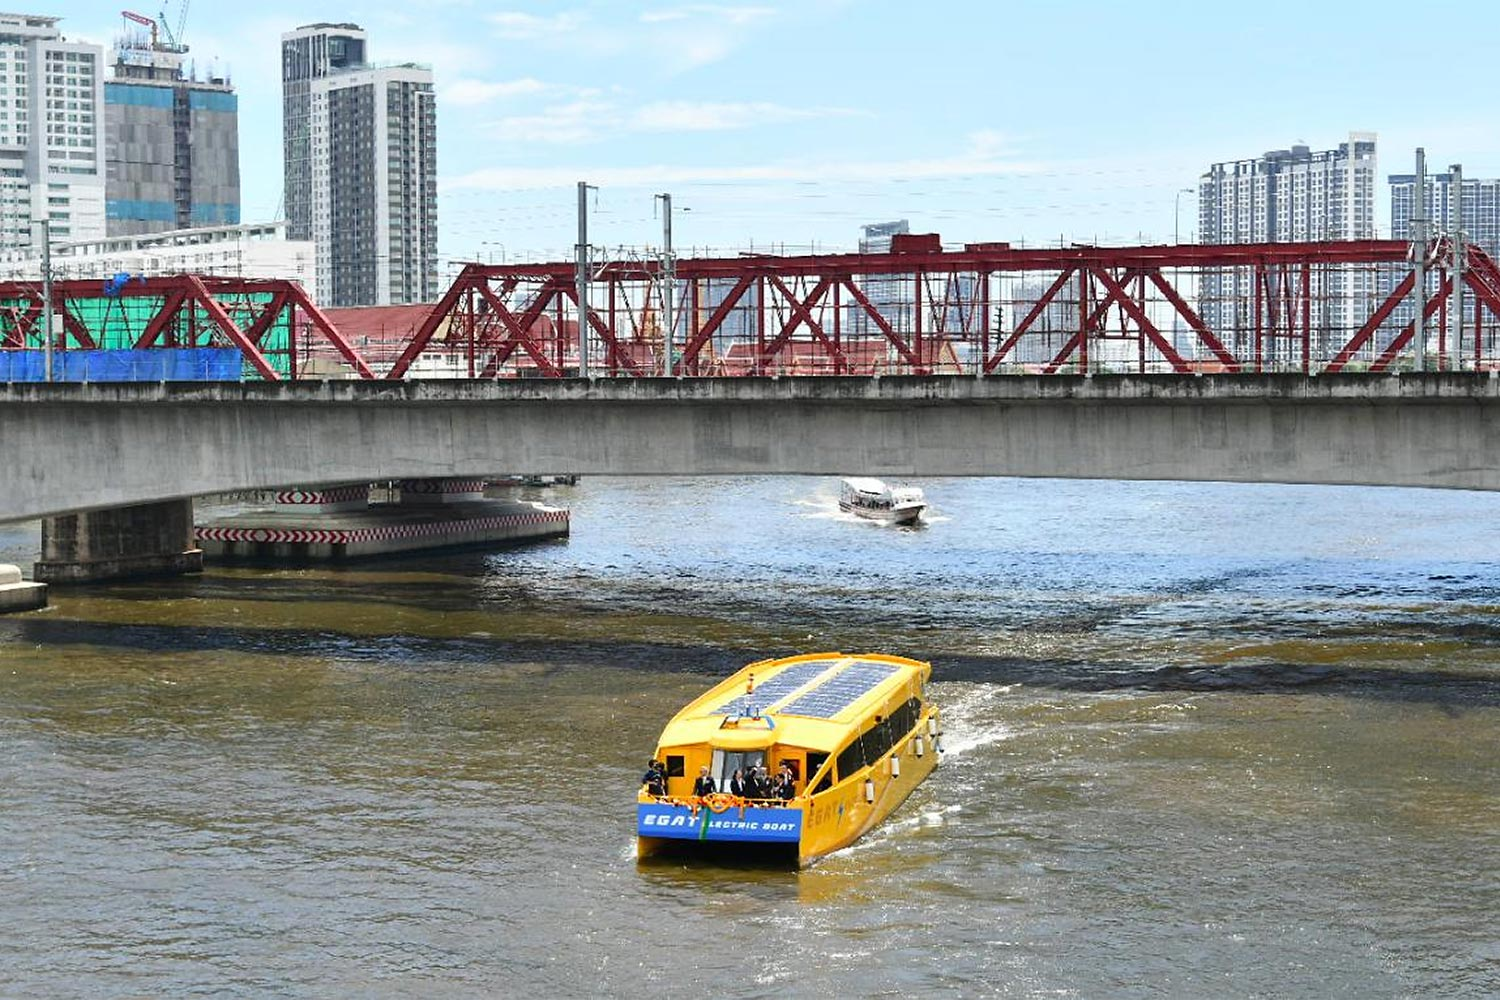 E-commuter boats to ply Chao Phraya